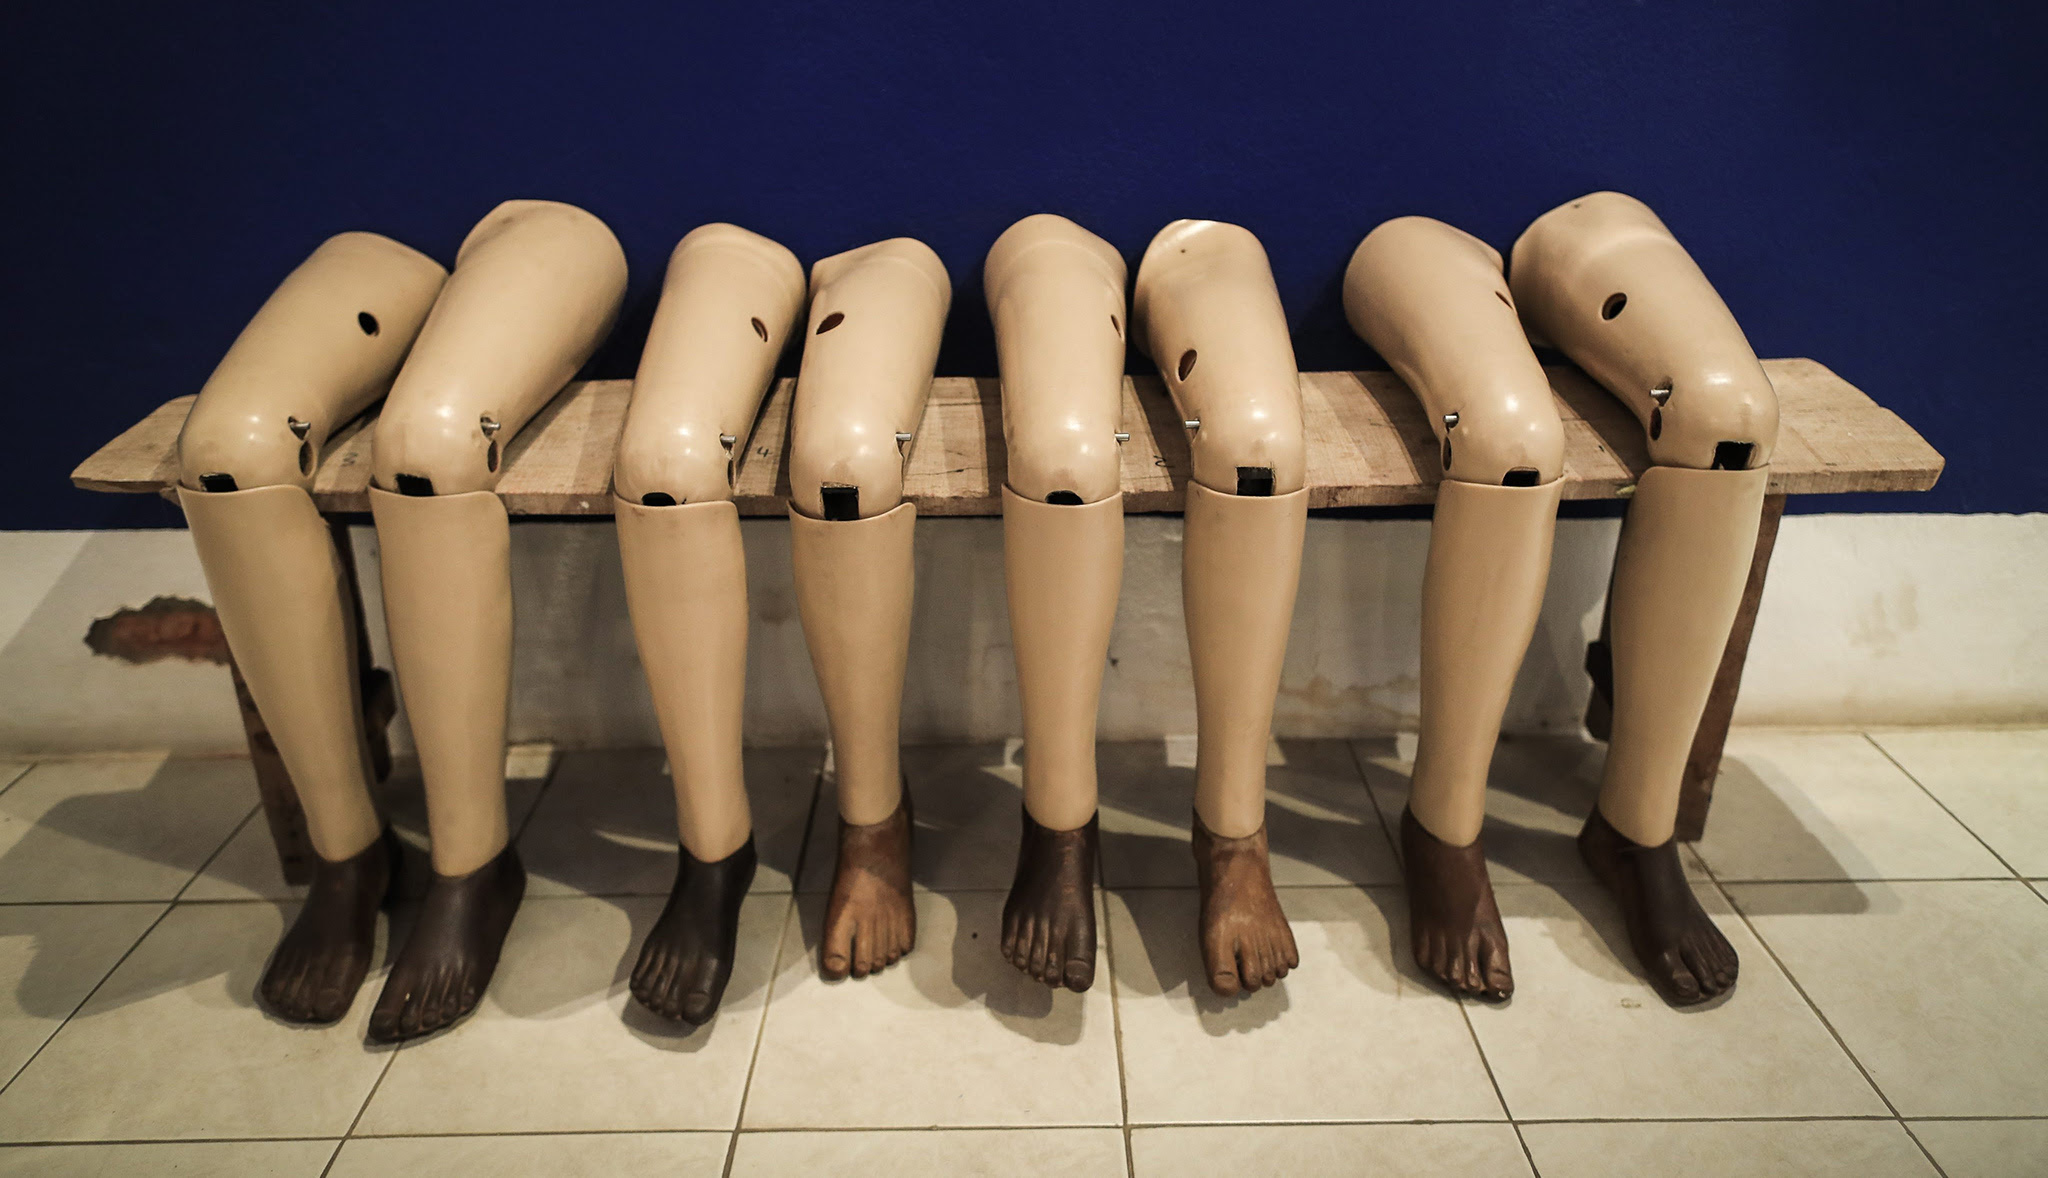 Leg prostheses on display at the Cooperative Orthotic and Prosthetic Enterprise (COPE) Center in Vientiane, Laos, 05 September 2016. COPE was created to provide Unexploded ordnance (UXO) survivors with access to orthotic and prosthetic devices. During the Vietnam War from 1964 to 1973, US troops dropped more than two million tons of bomb on Laos and estimated one third of the nearly 300 million bomb dropped were failed to detonated. Laos is hosting the 28th and 29th ASEAN Summits and Related Summits from 06 to 08 September 2016.  EPA/MAST IRHAM